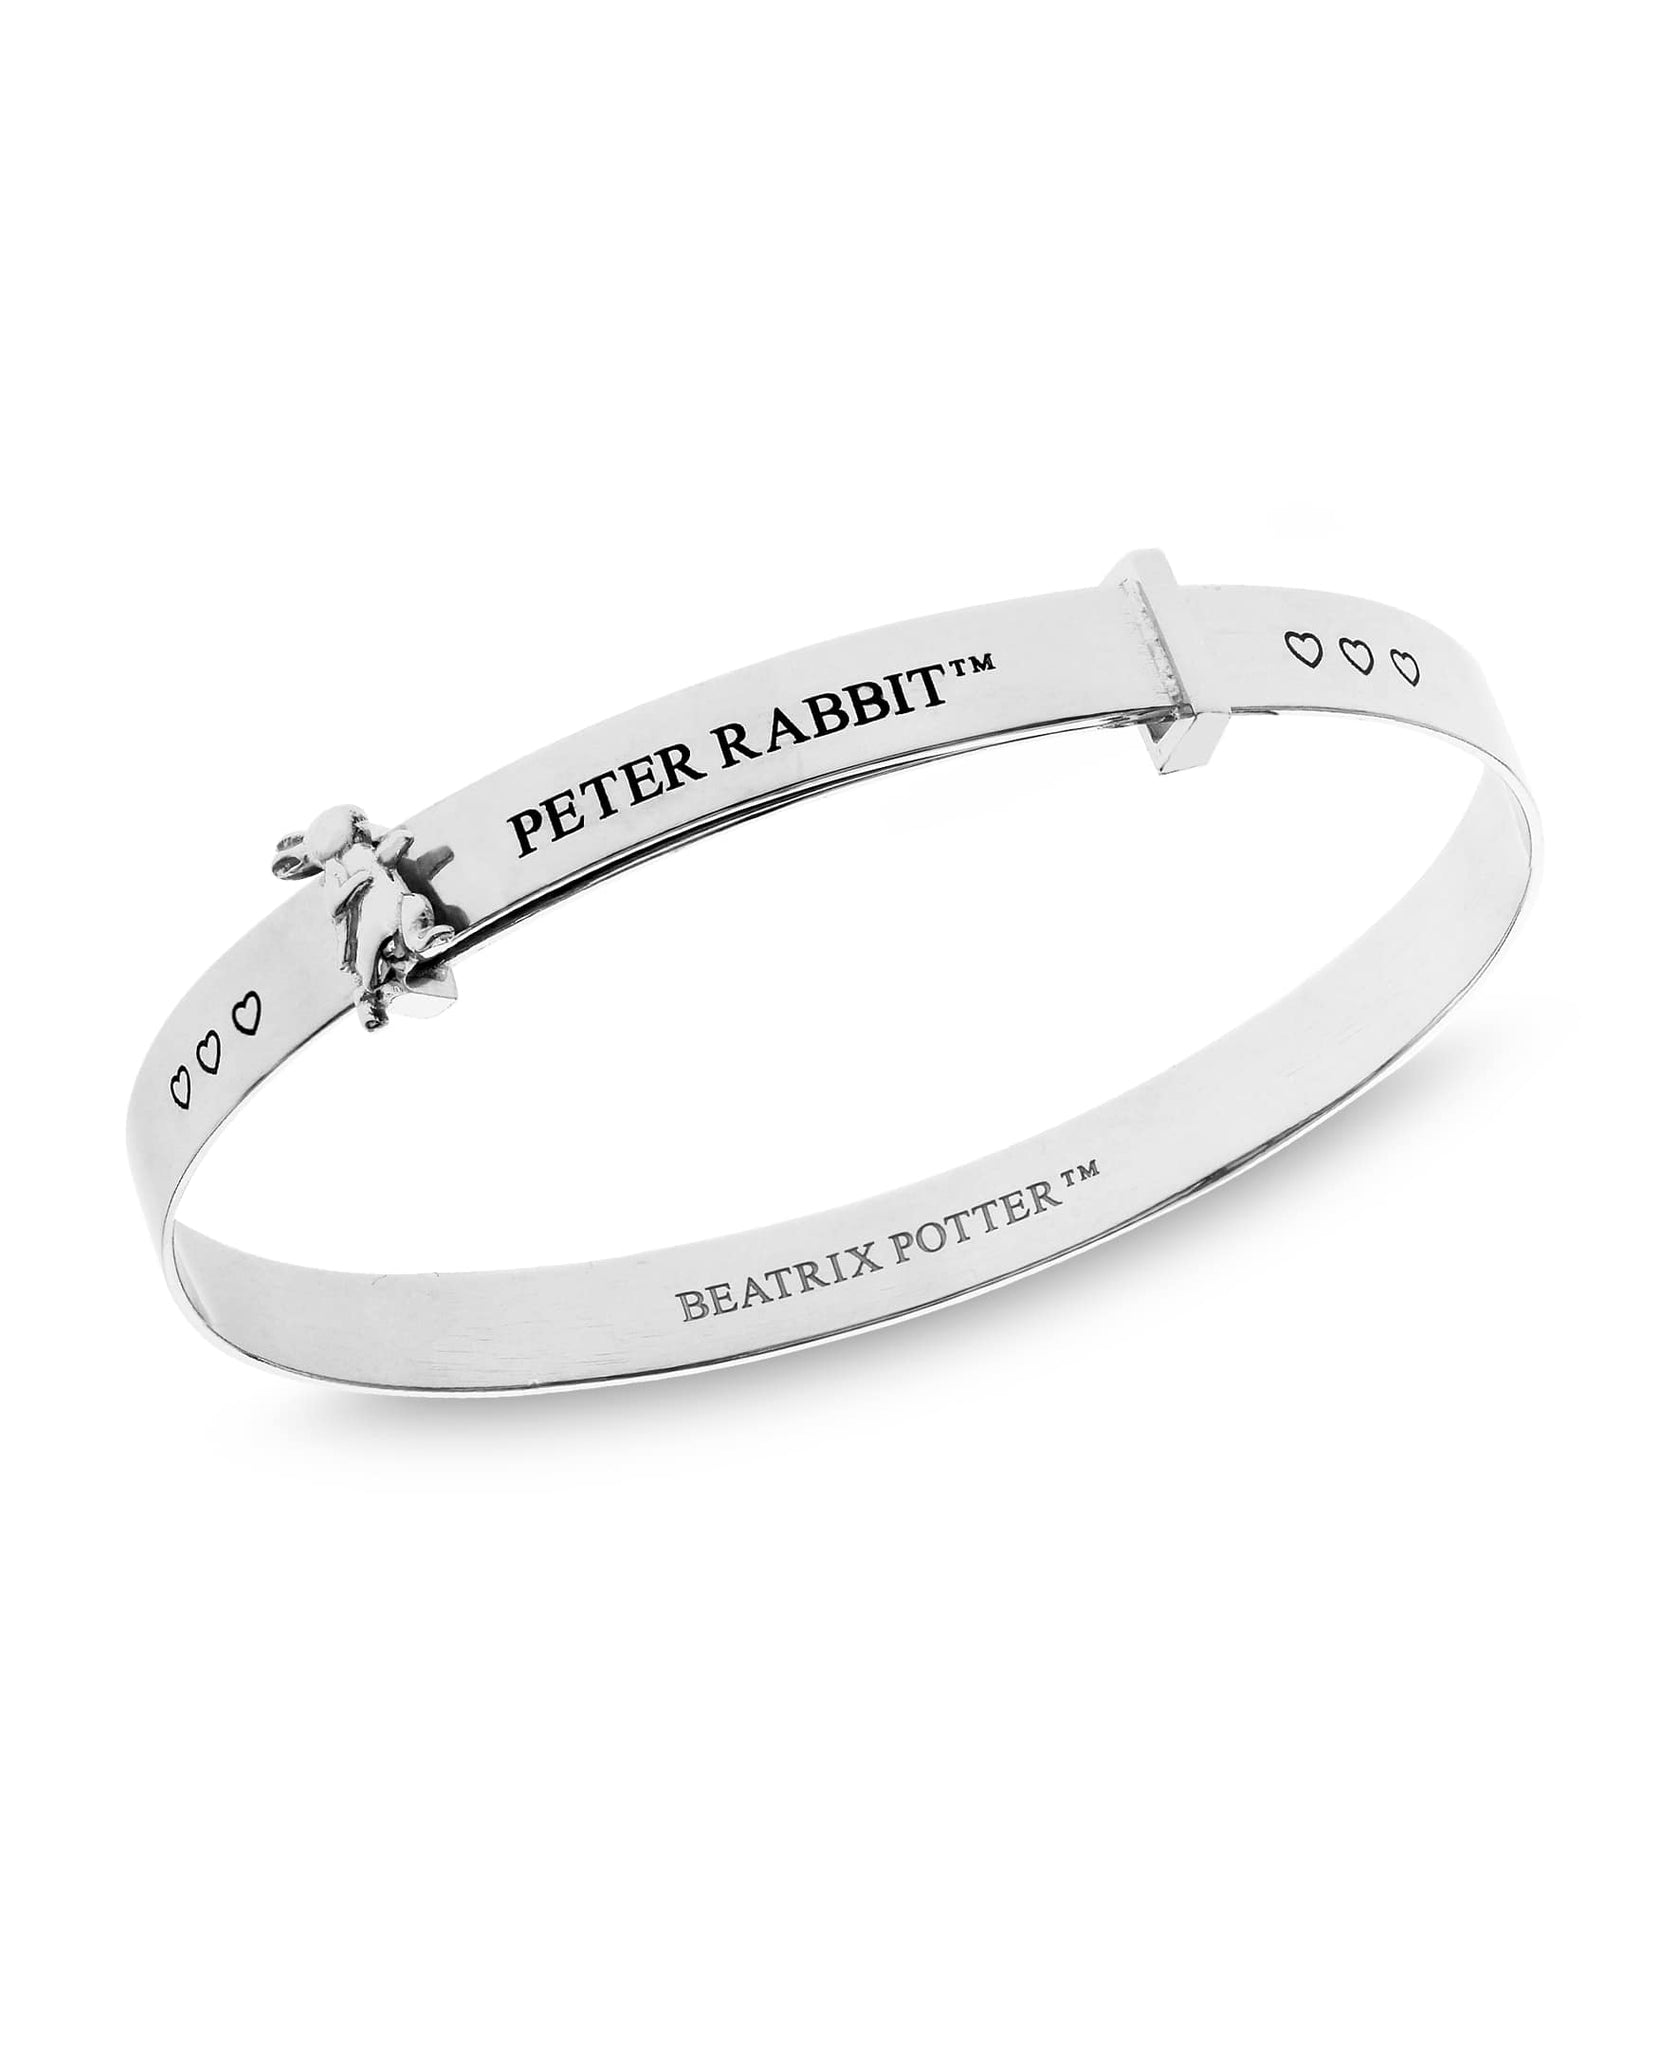 Beatrix Potter Sterling Silver Peter Rabbit Hearts Expander Bangle Bracelet - Rhona Sutton Jewellery